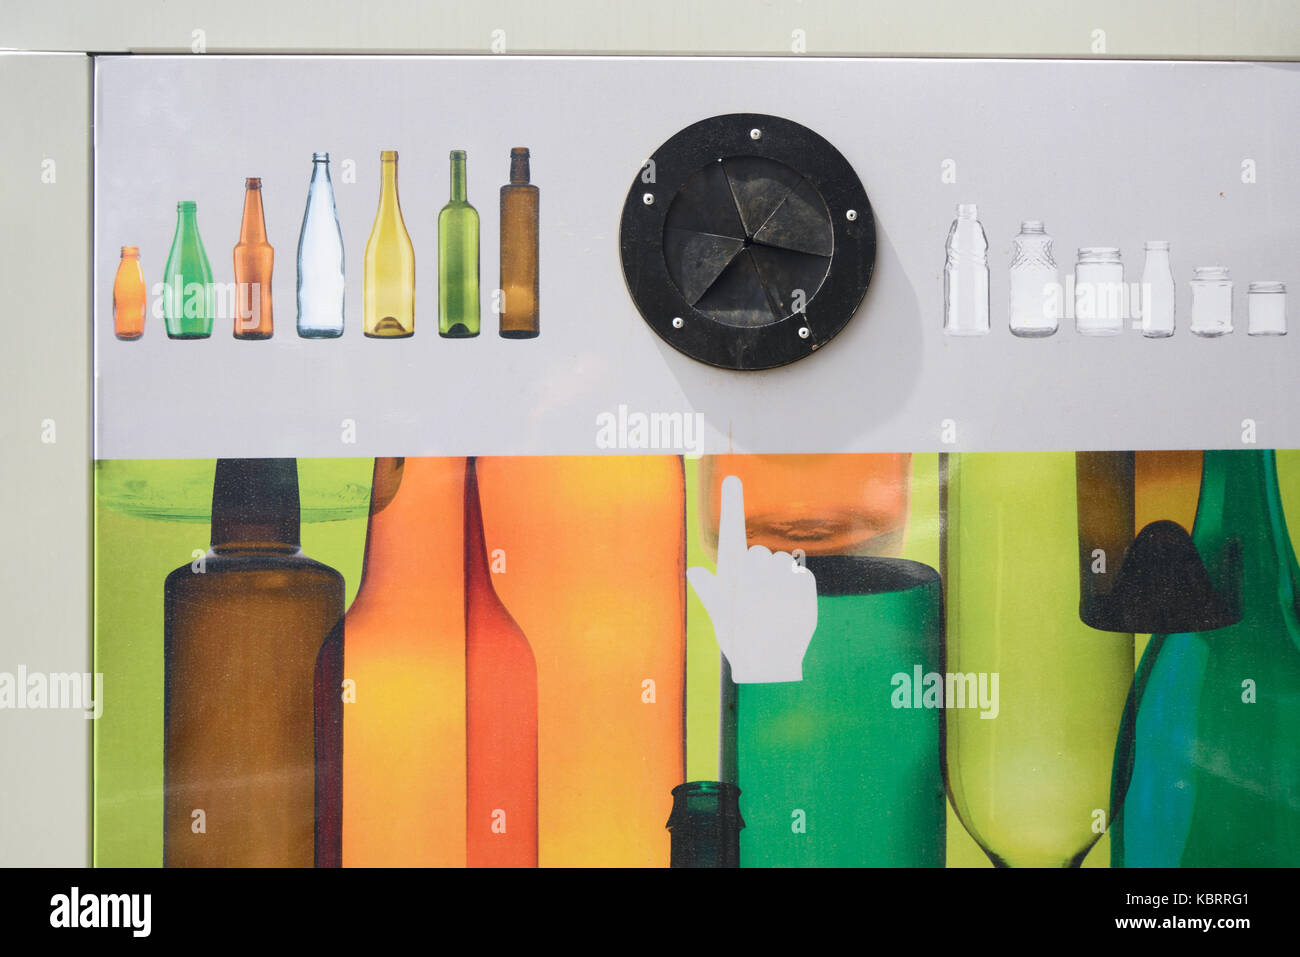 Bottle Bank or Glass Collection Point for Glass Recycling - Stock Image